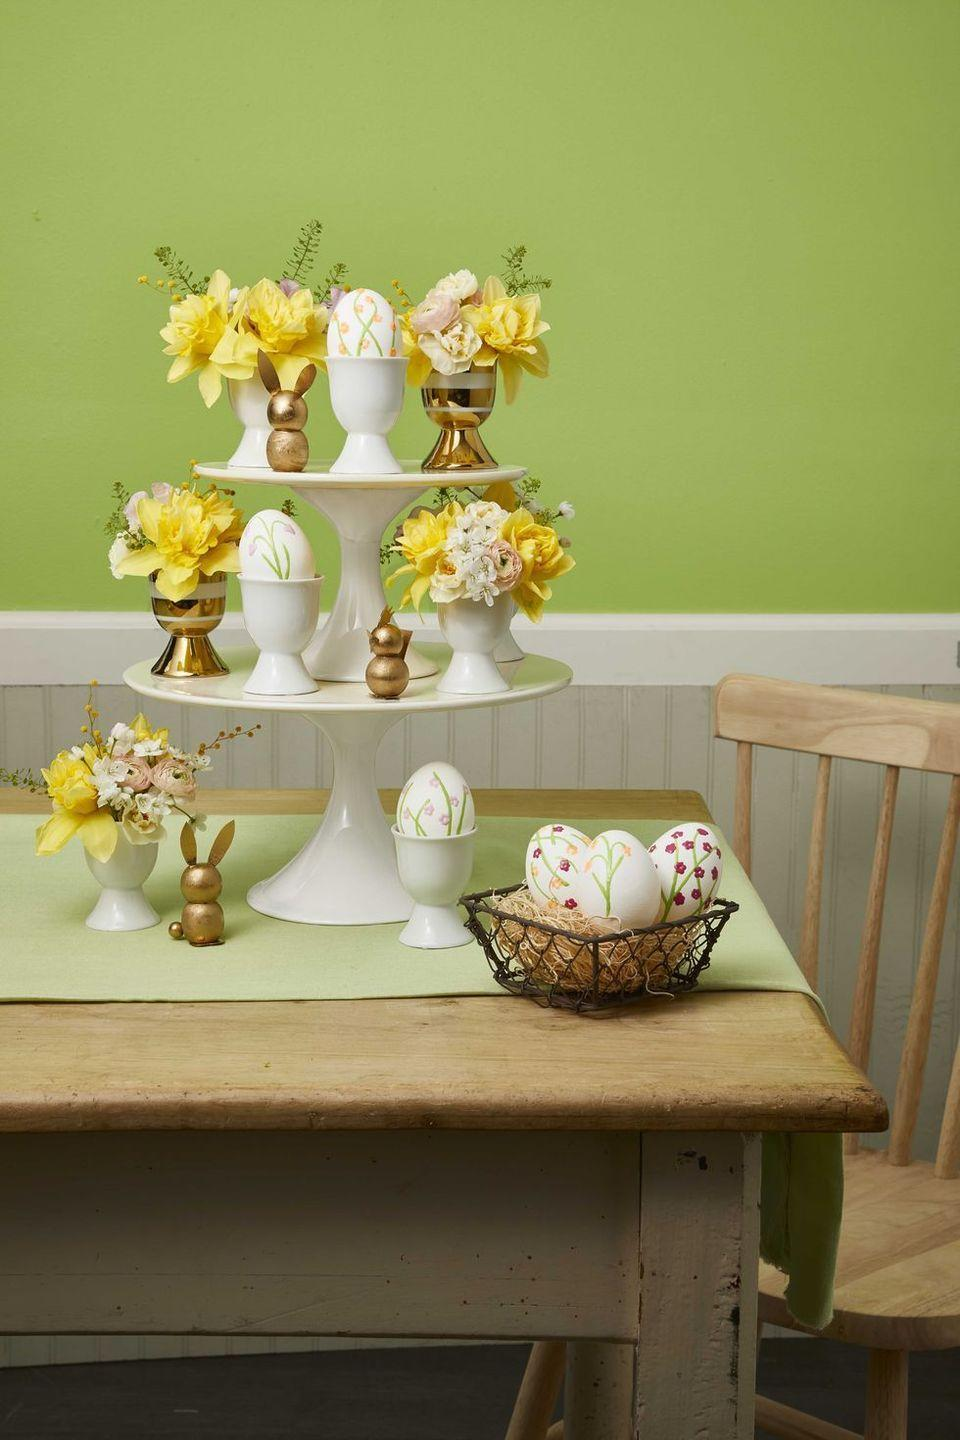 """<p>After the kids decorate their Easter eggs, show them off with this elegant DIY cake stand.</p><p><strong><em><a href=""""https://www.womansday.com/home/decorating/g1100/easter-brunch/?slide=1"""" rel=""""nofollow noopener"""" target=""""_blank"""" data-ylk=""""slk:Get the Cake Stand Centerpiece tutorial."""" class=""""link rapid-noclick-resp"""">Get the Cake Stand Centerpiece tutorial.</a></em></strong></p><p><strong><a class=""""link rapid-noclick-resp"""" href=""""https://www.amazon.com/VILAVITA-Cupcake-Dessert-Birthday-Celebration/dp/B074TF6YB4?tag=syn-yahoo-20&ascsubtag=%5Bartid%7C10070.g.1751%5Bsrc%7Cyahoo-us"""" rel=""""nofollow noopener"""" target=""""_blank"""" data-ylk=""""slk:SHOP CAKE STANDS"""">SHOP CAKE STANDS</a></strong></p>"""